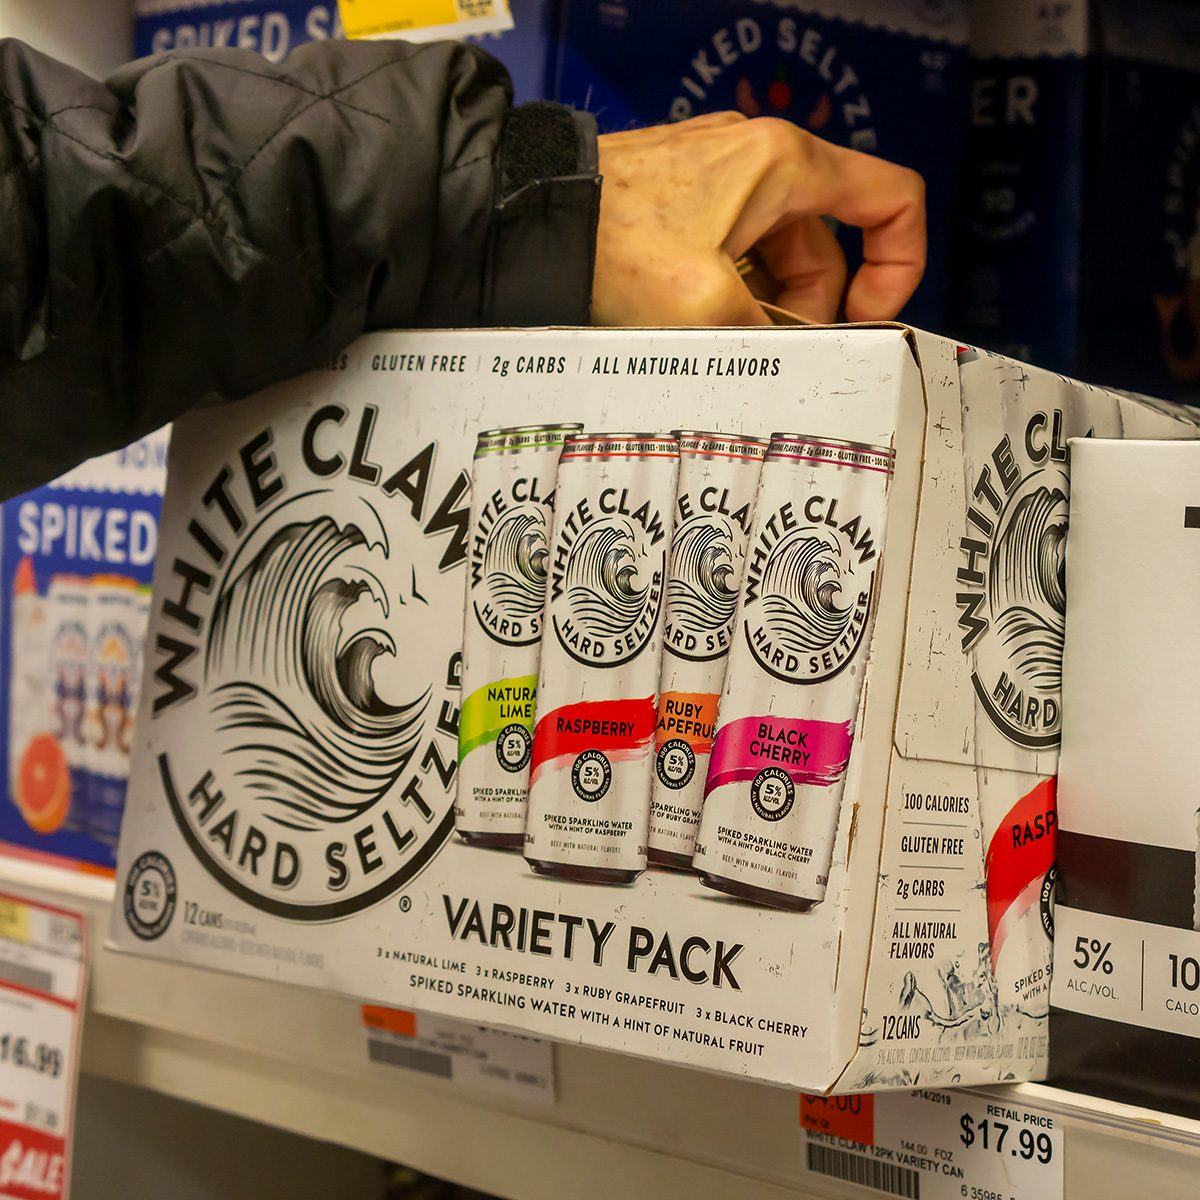 A discerning consumer chooses a case of White Claw brand hard seltzer among other brands in a cooler in a supermarket